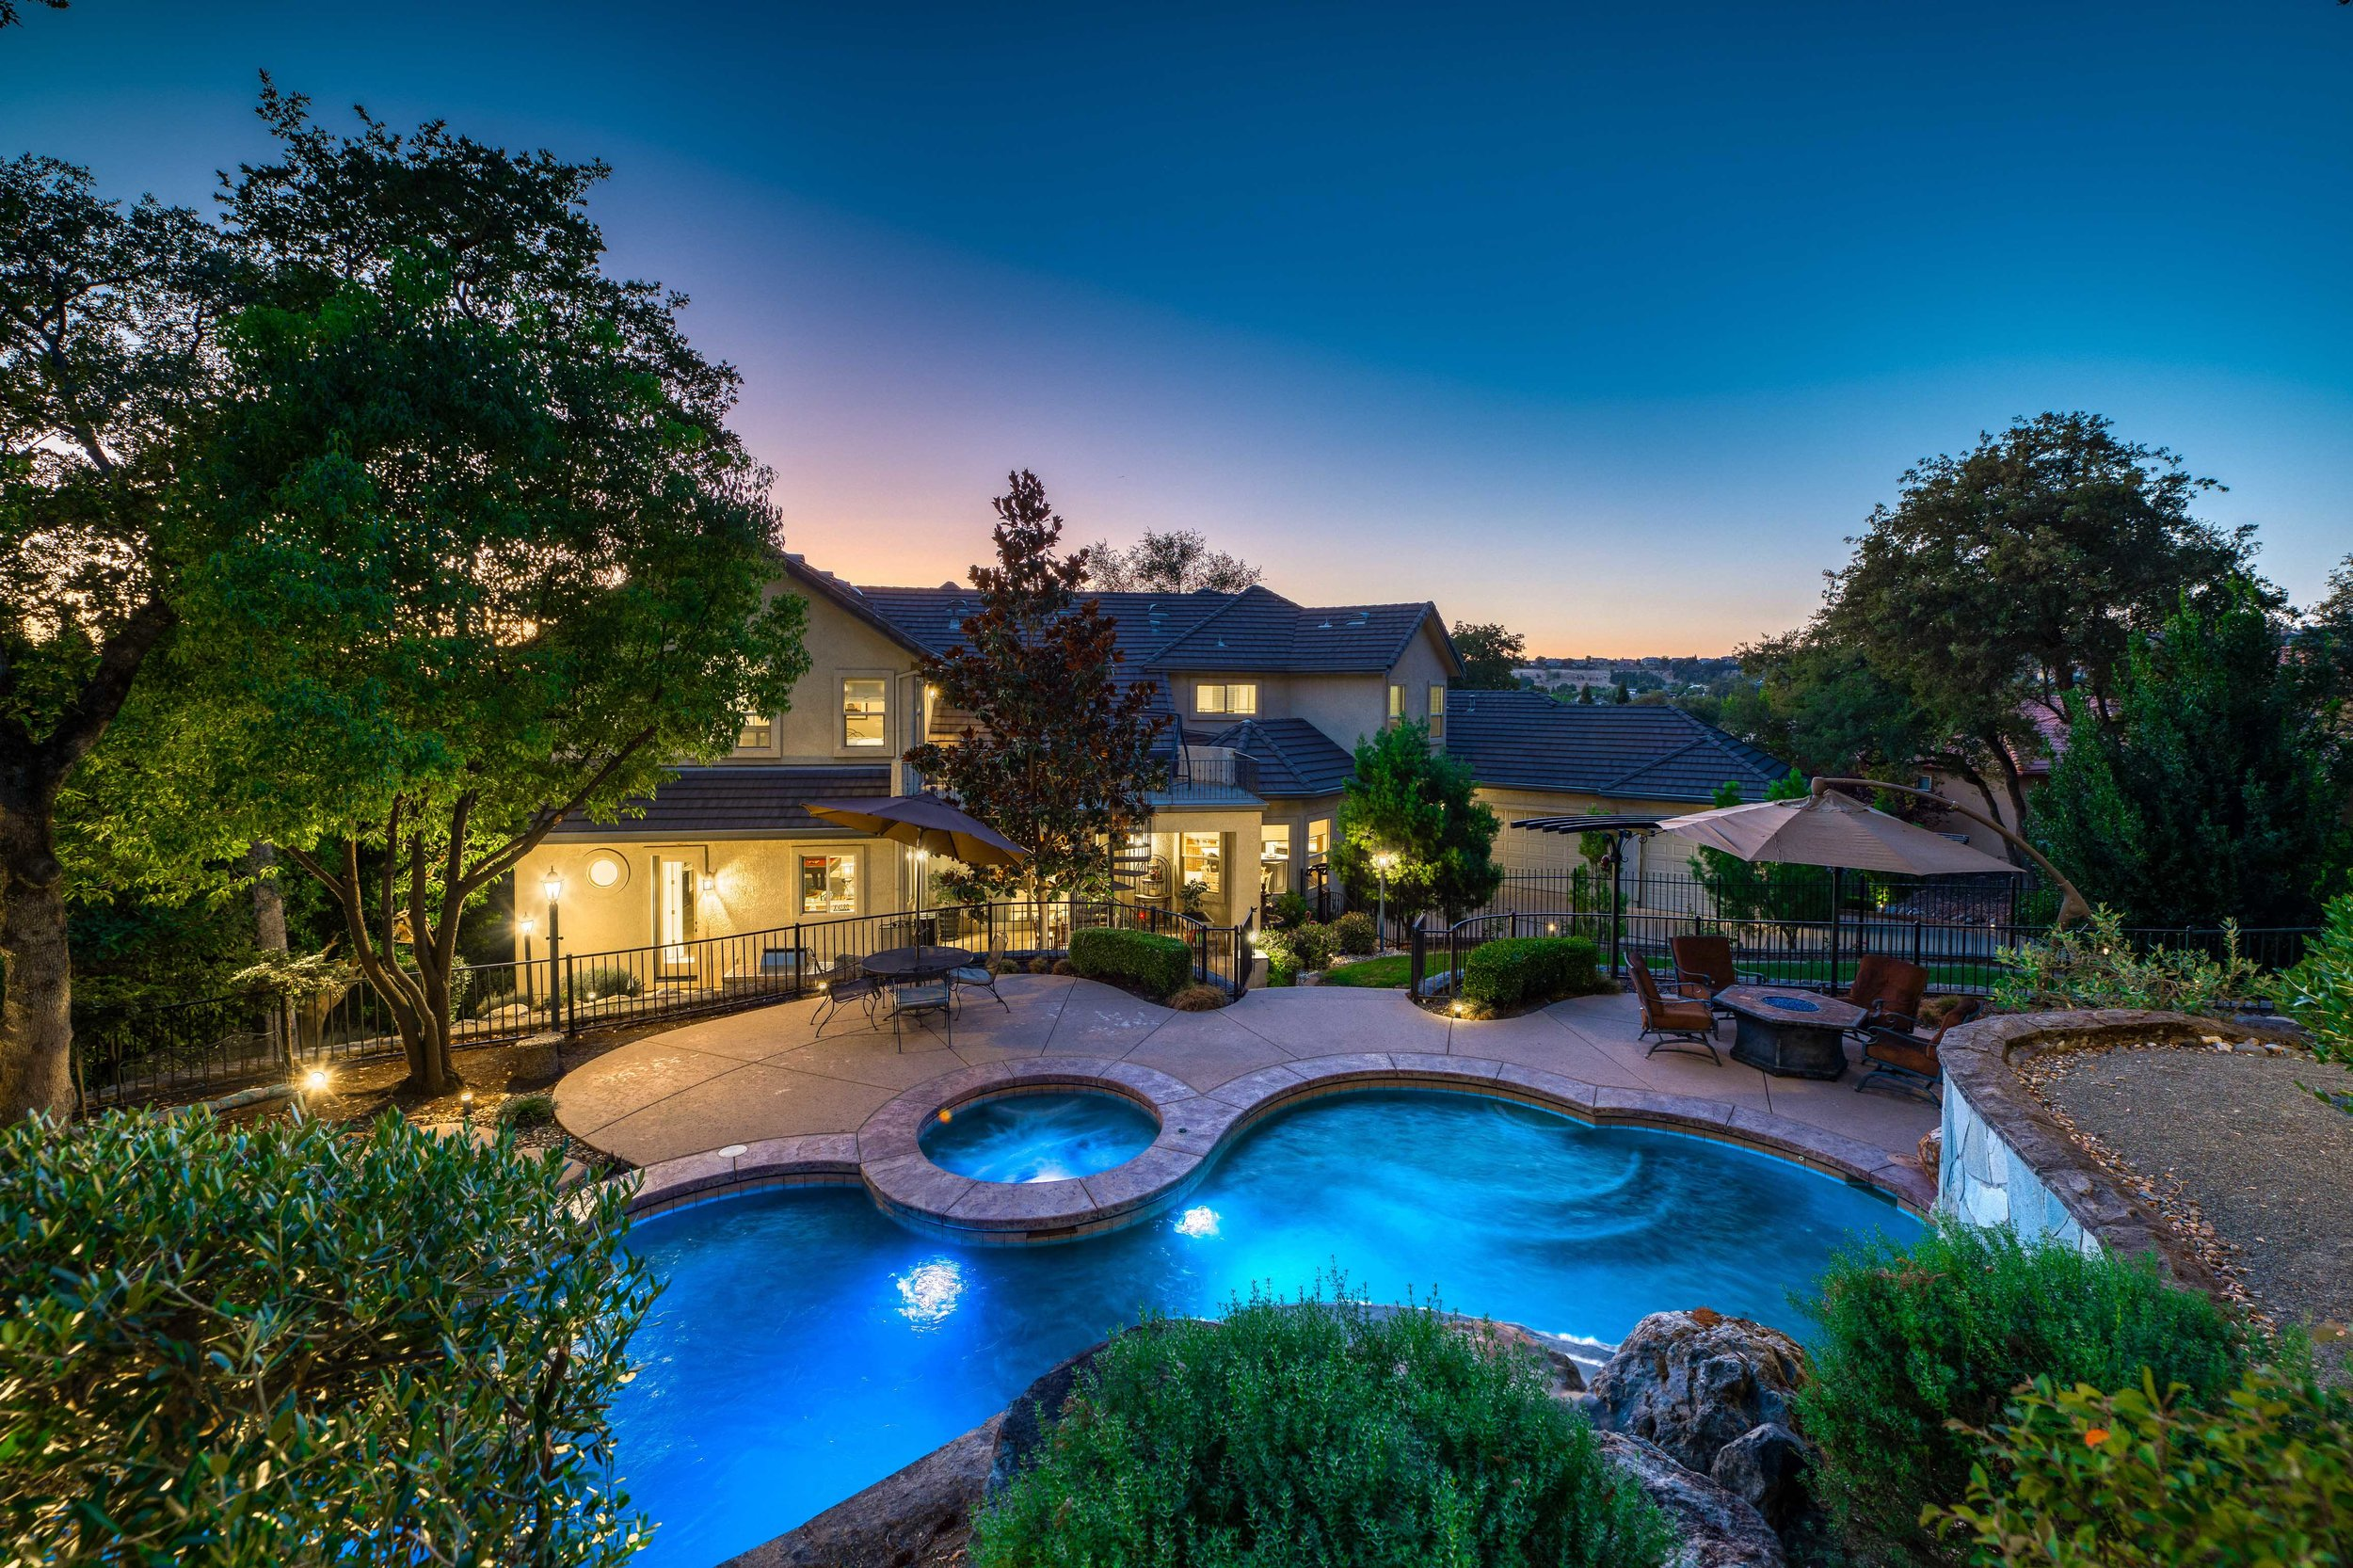 2330 Clubhouse Drive - Twilight - 10.jpg